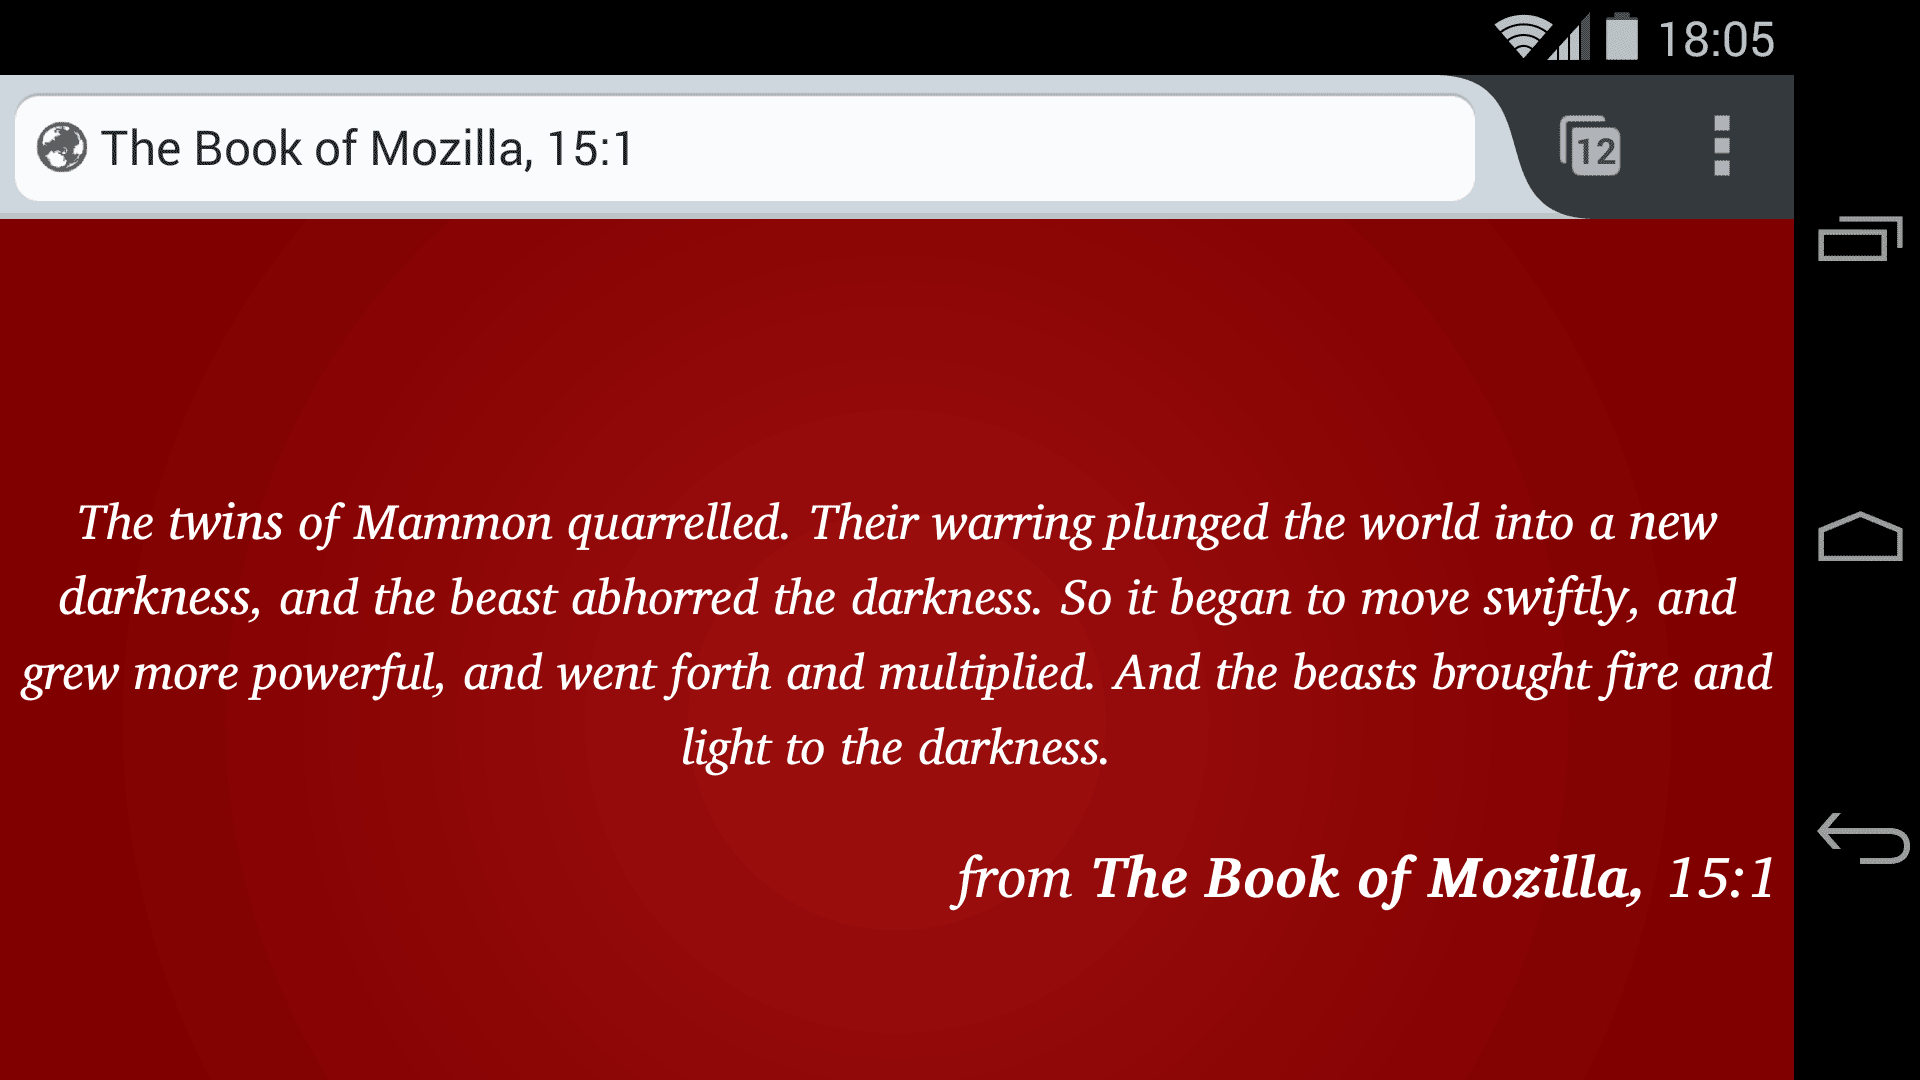 """A """"Book of Mozilla"""" easter egg criticizes Apple and Google as greedy in the mobile market."""